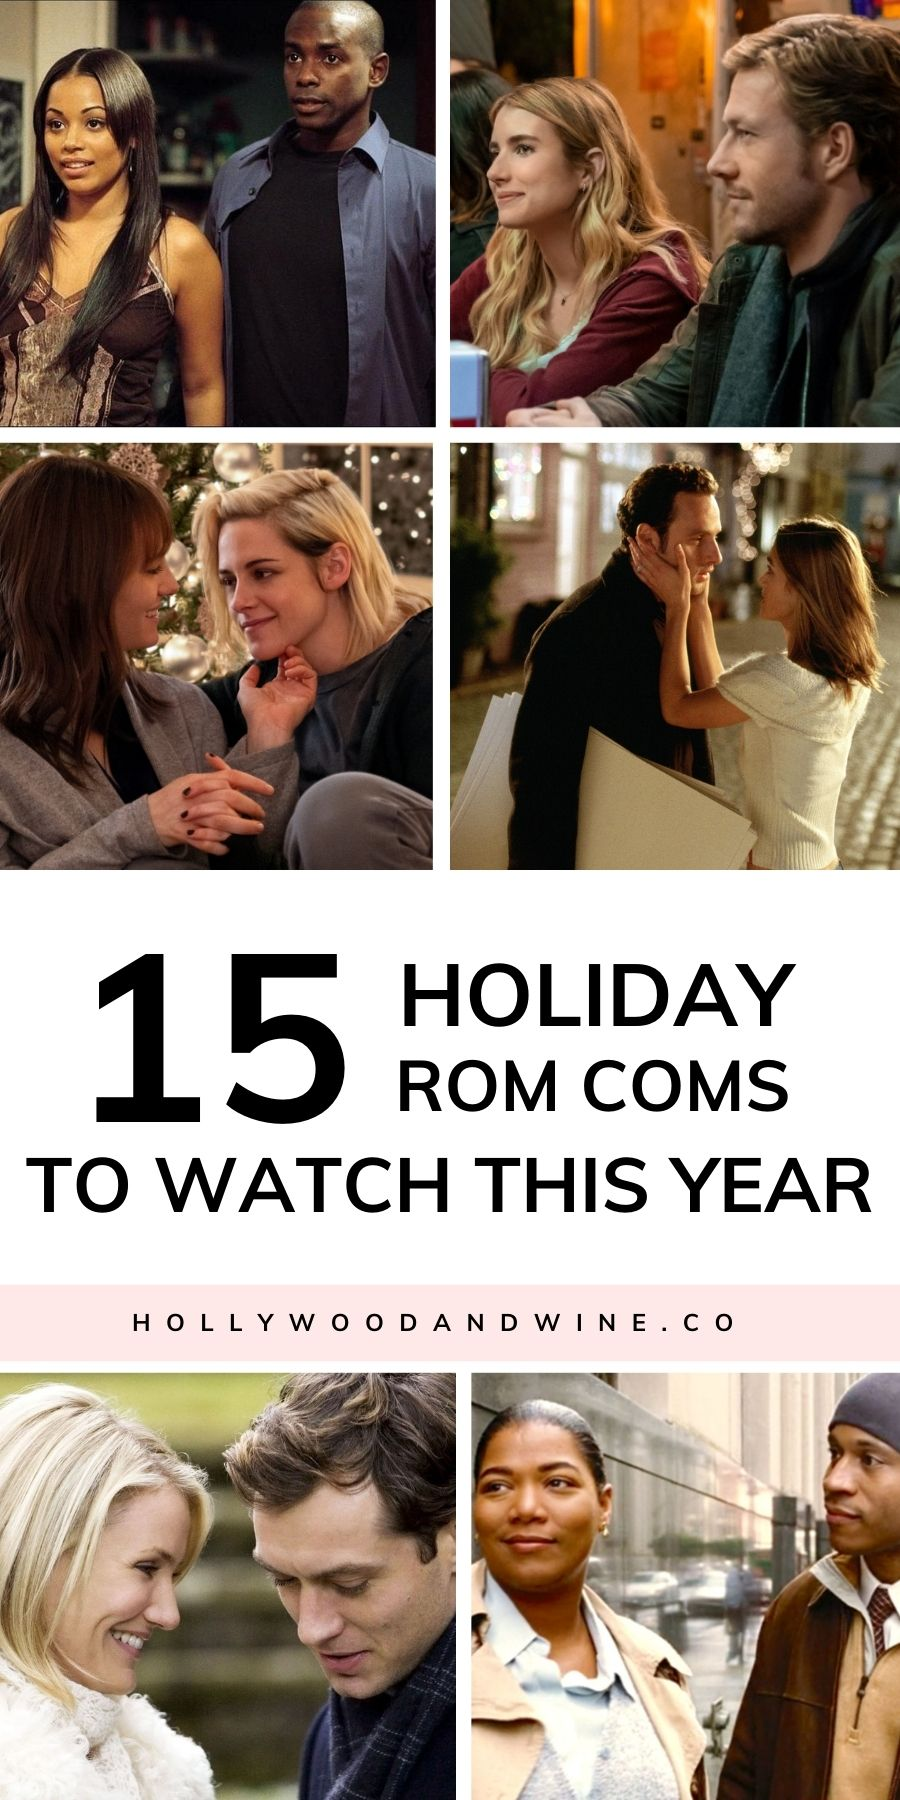 15 Christmas rom coms to watch this year